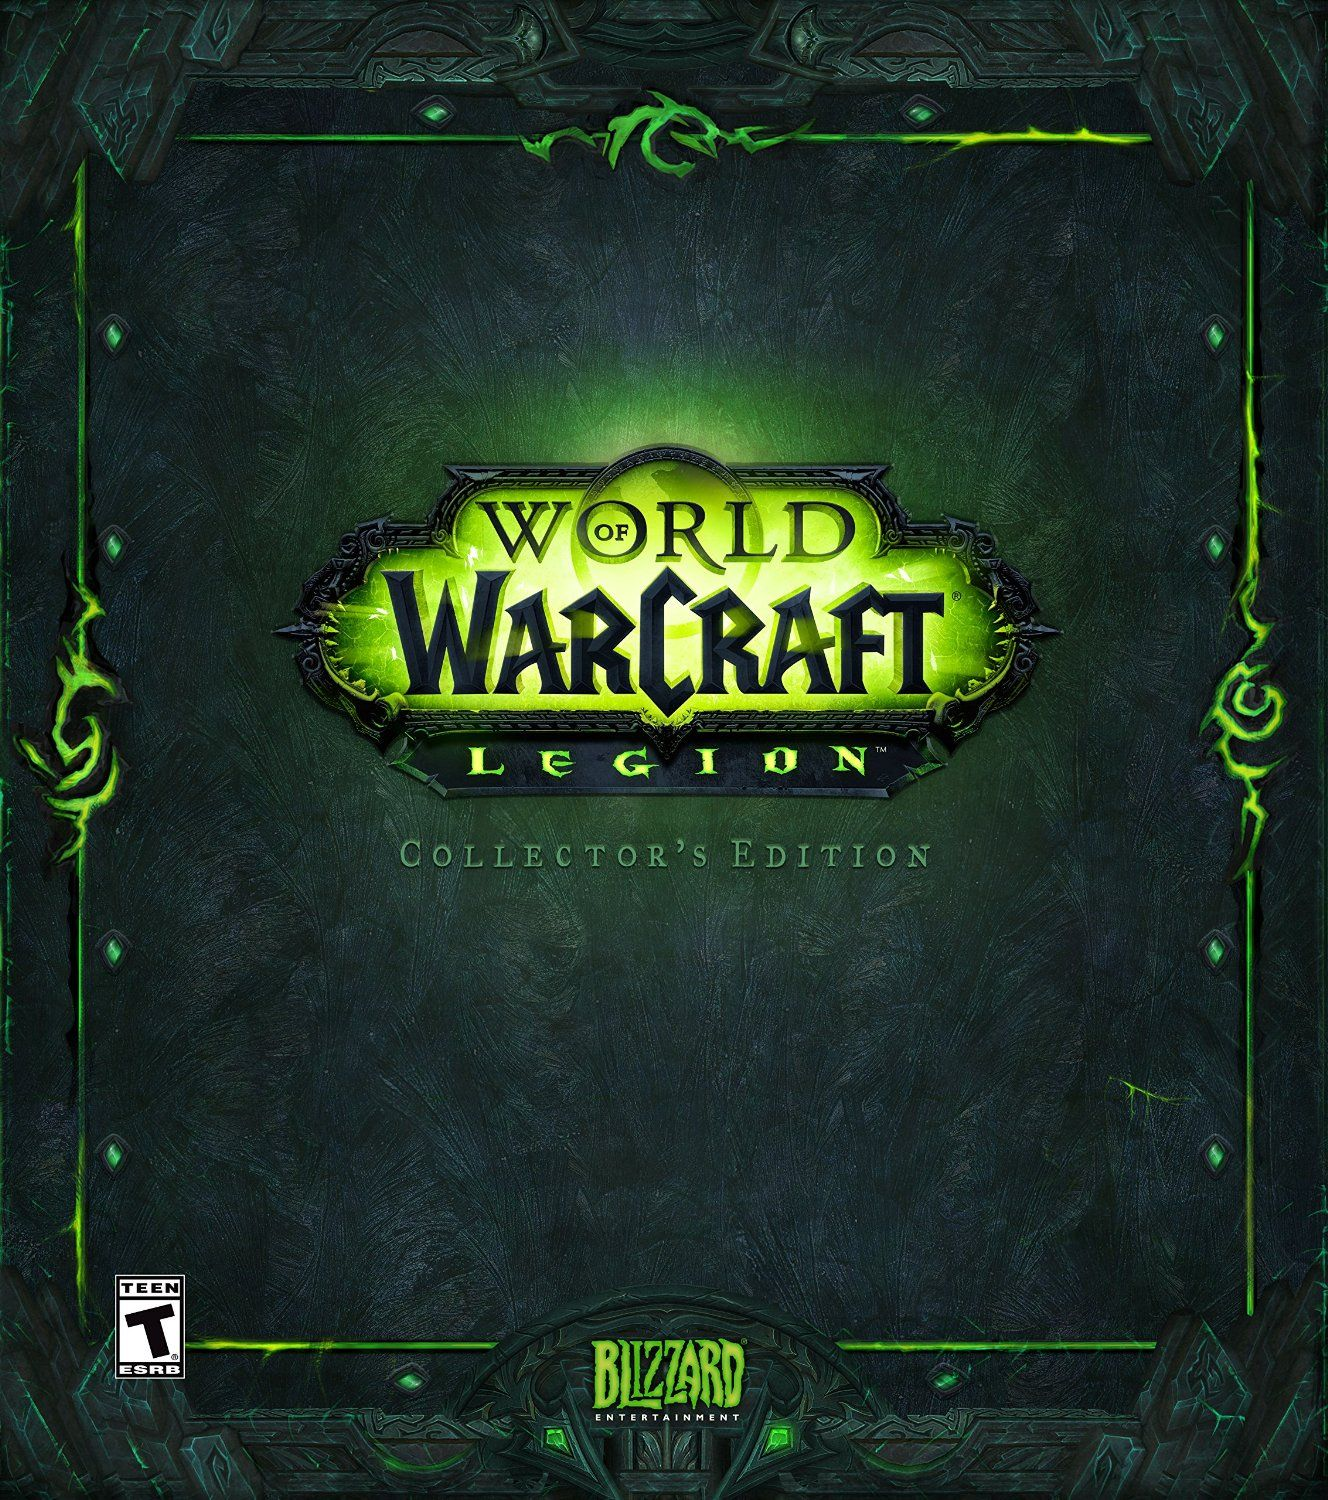 You want the ultimate World of Warcraft - Legion experience? Pre-order the Collectors Edition now!  Pre-order now: https://www.amazon.com/World-Warcraft-Legion-Standard-PC-Mac/dp/B017MRX6CM/ref=sr_1_2?s=videogames&ie=UTF8&qid=1466621161&sr=1-2&keywords=world+of+warcraft+legion